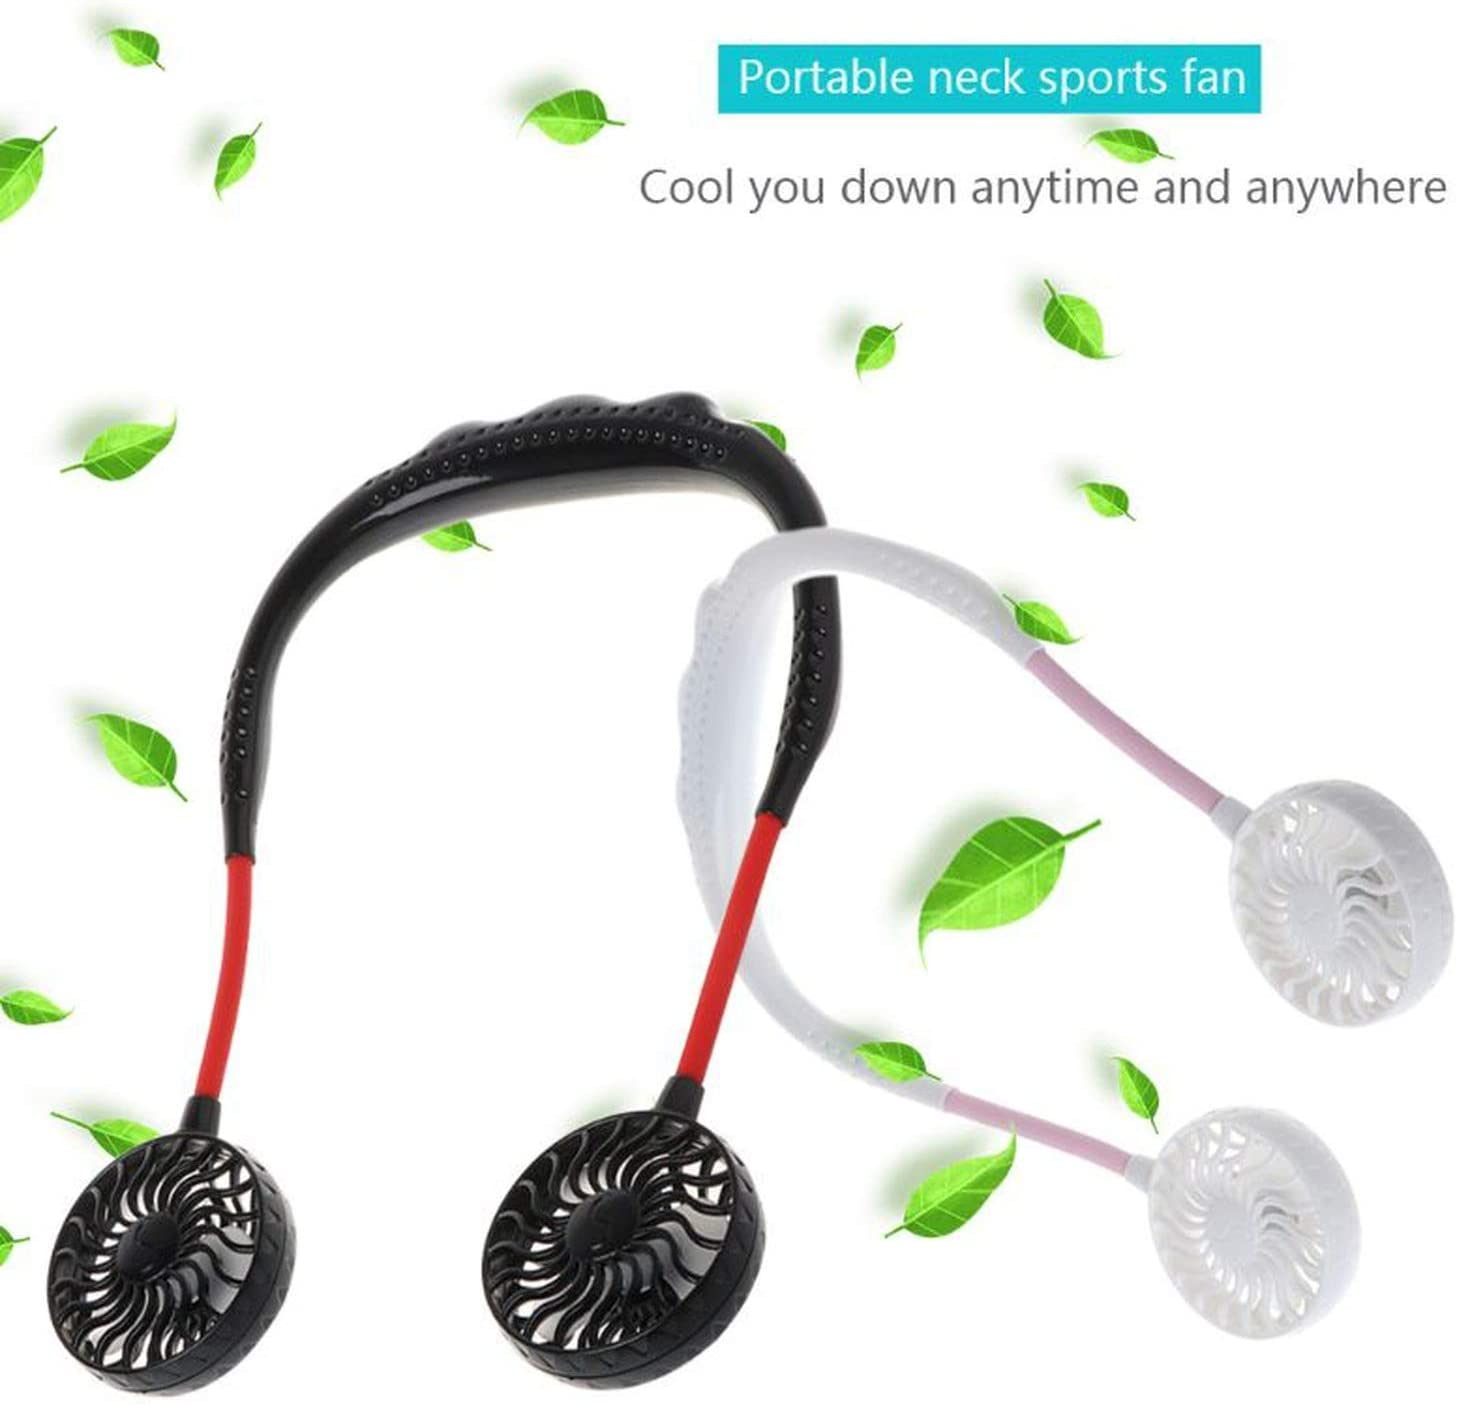 2019 Summer Hands-Free Lazy Band Hanging USB Rechargeable Sports Dual Fan Mini Air Cooler Portable 3 Speeds Large Battery,White